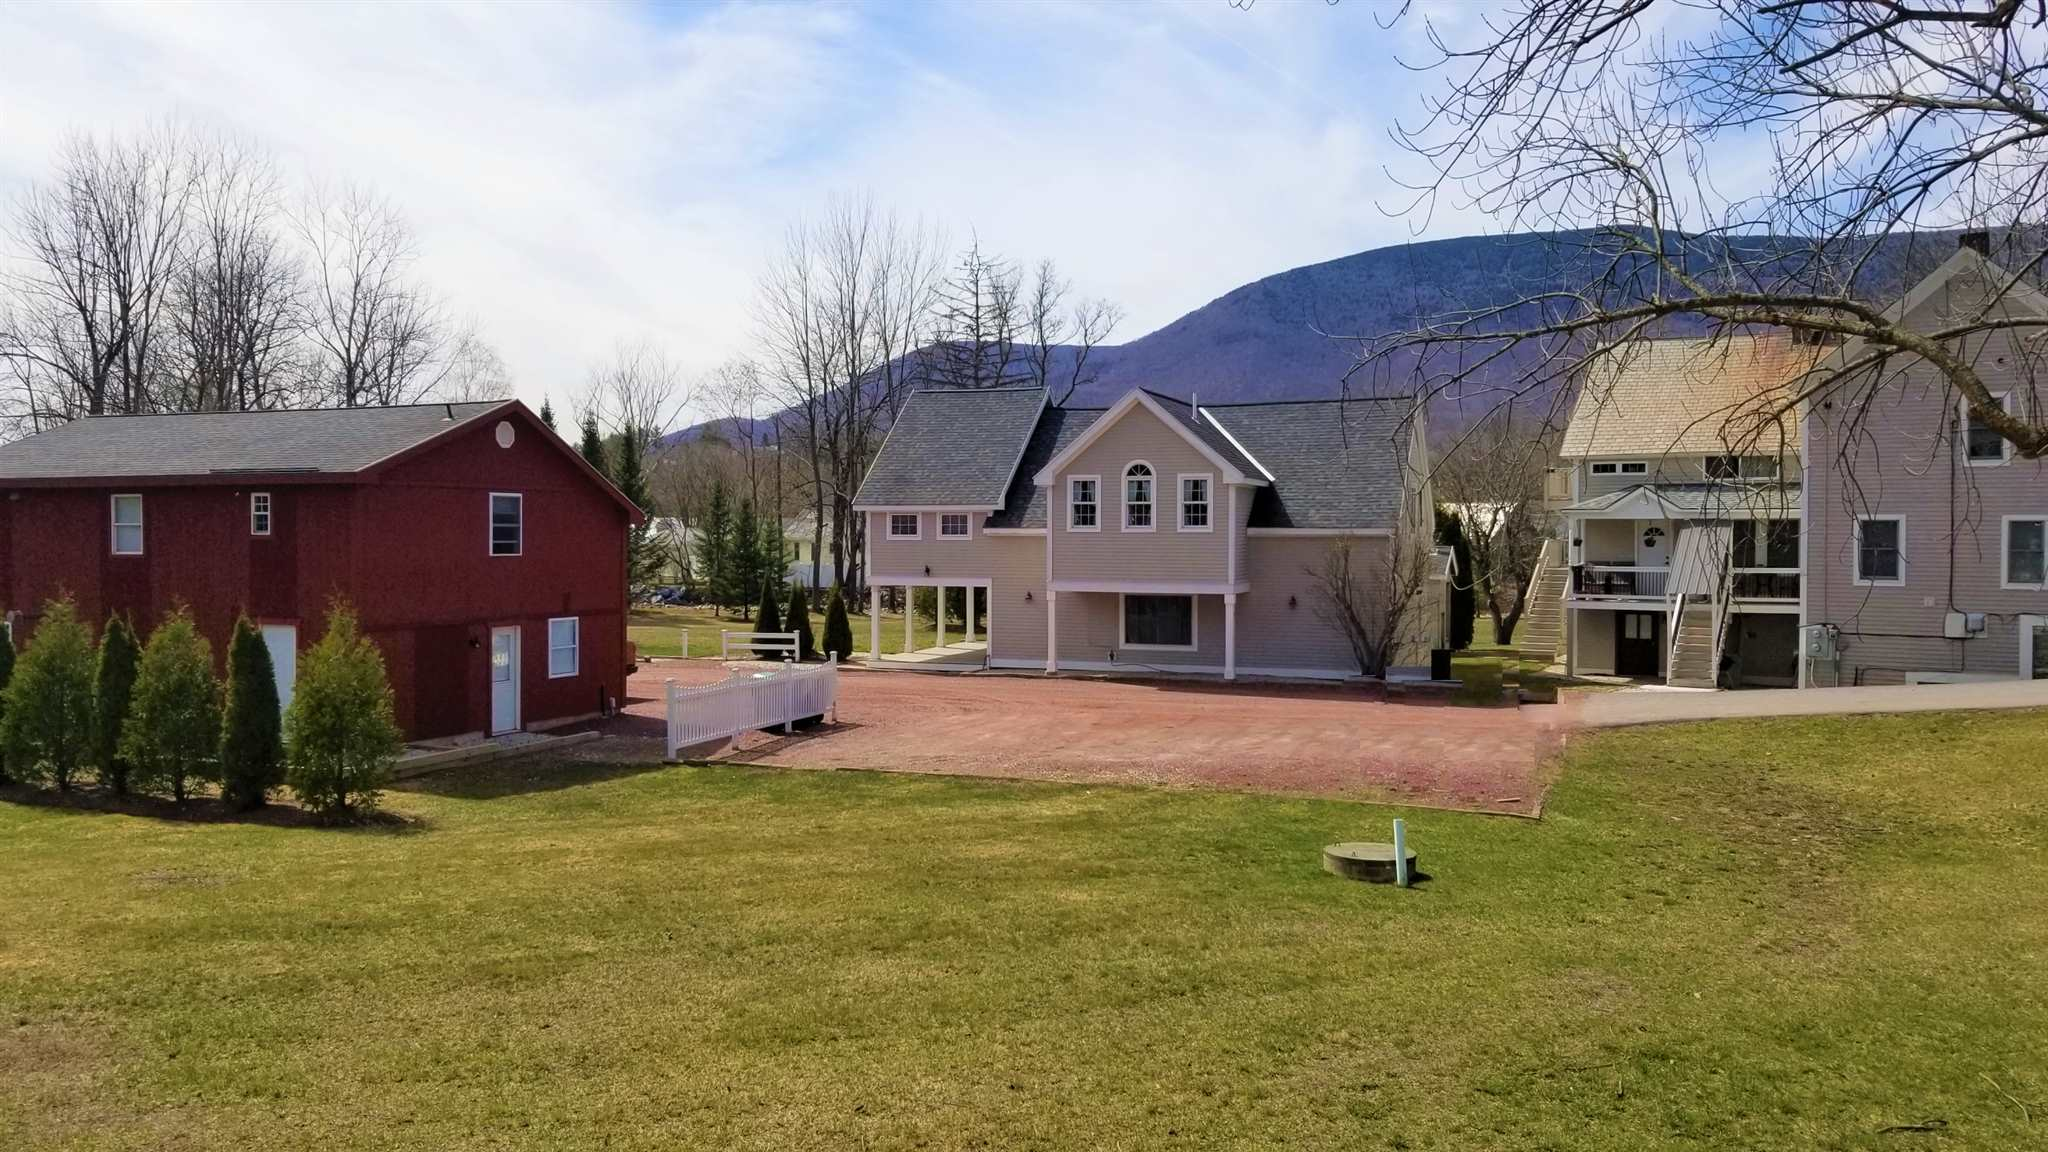 Photo of 42 East Manchester Road Manchester VT 05255